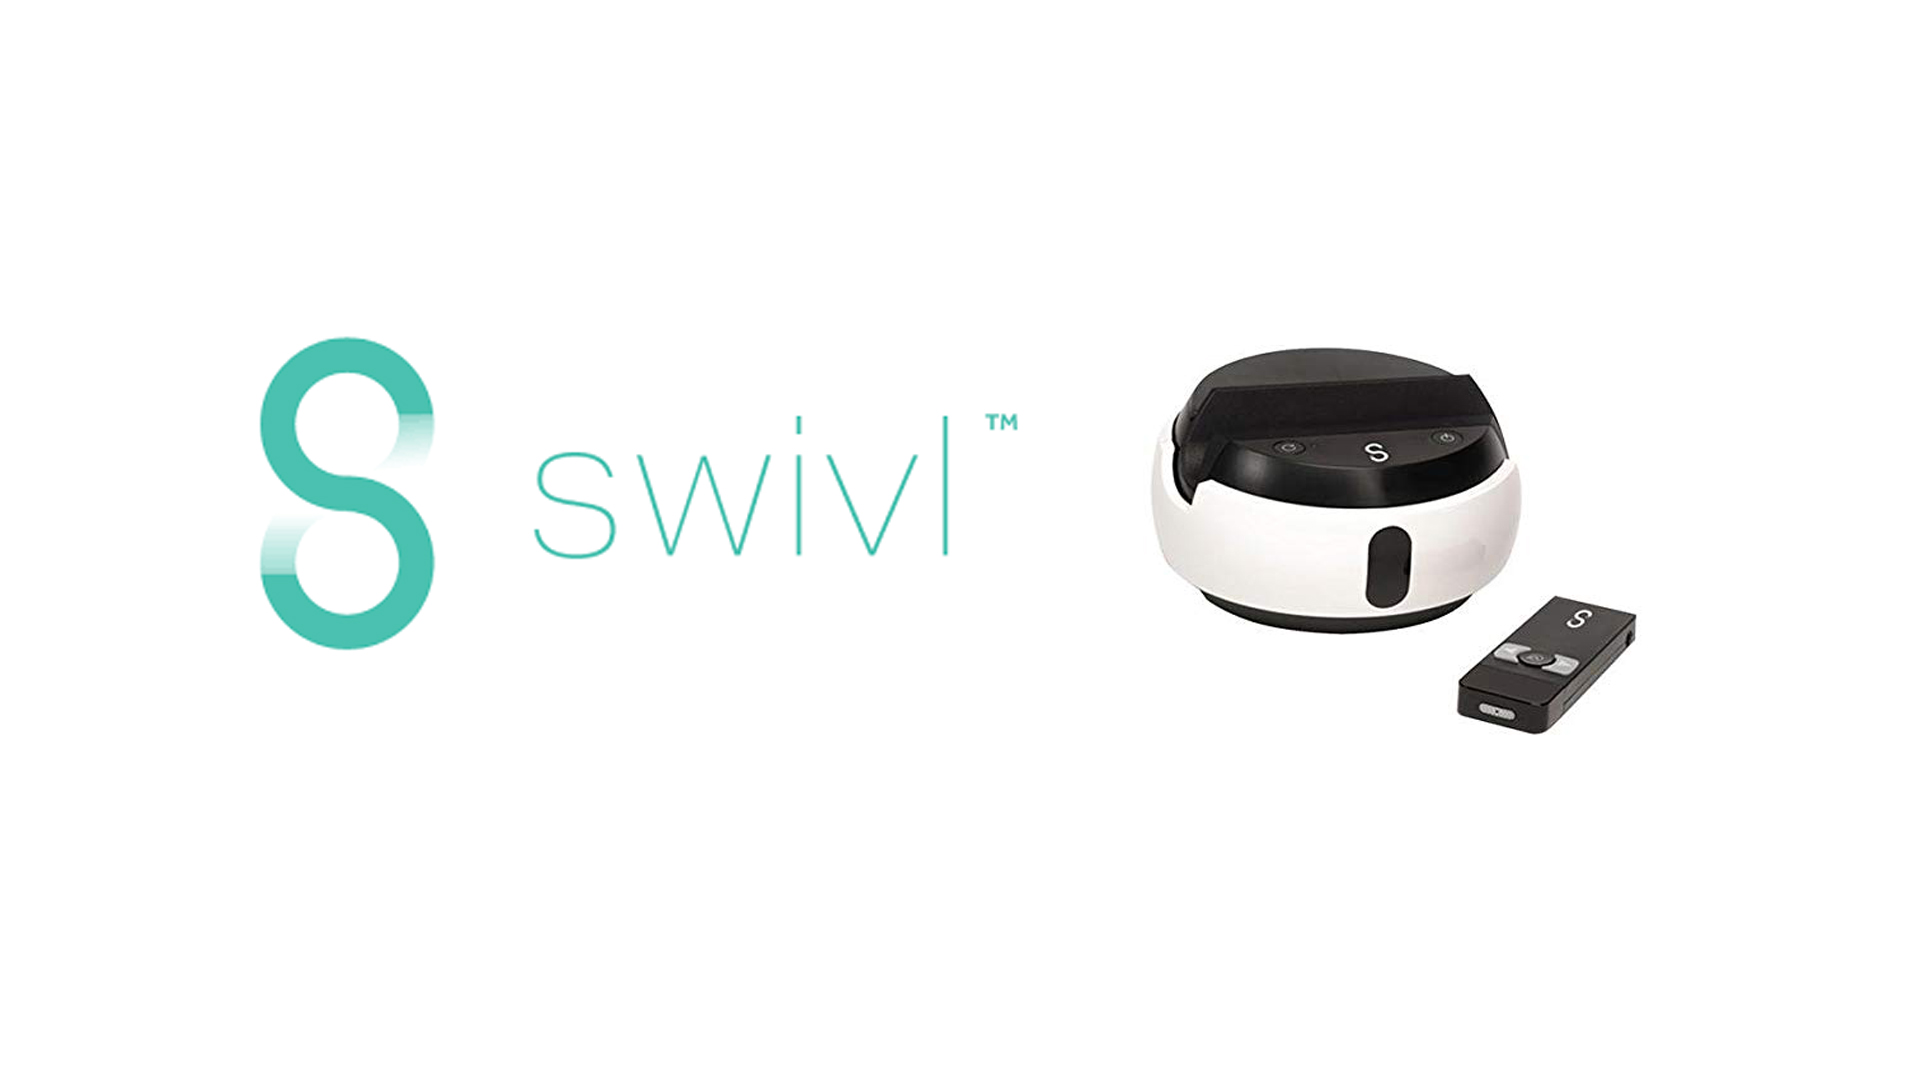 Swivl Video